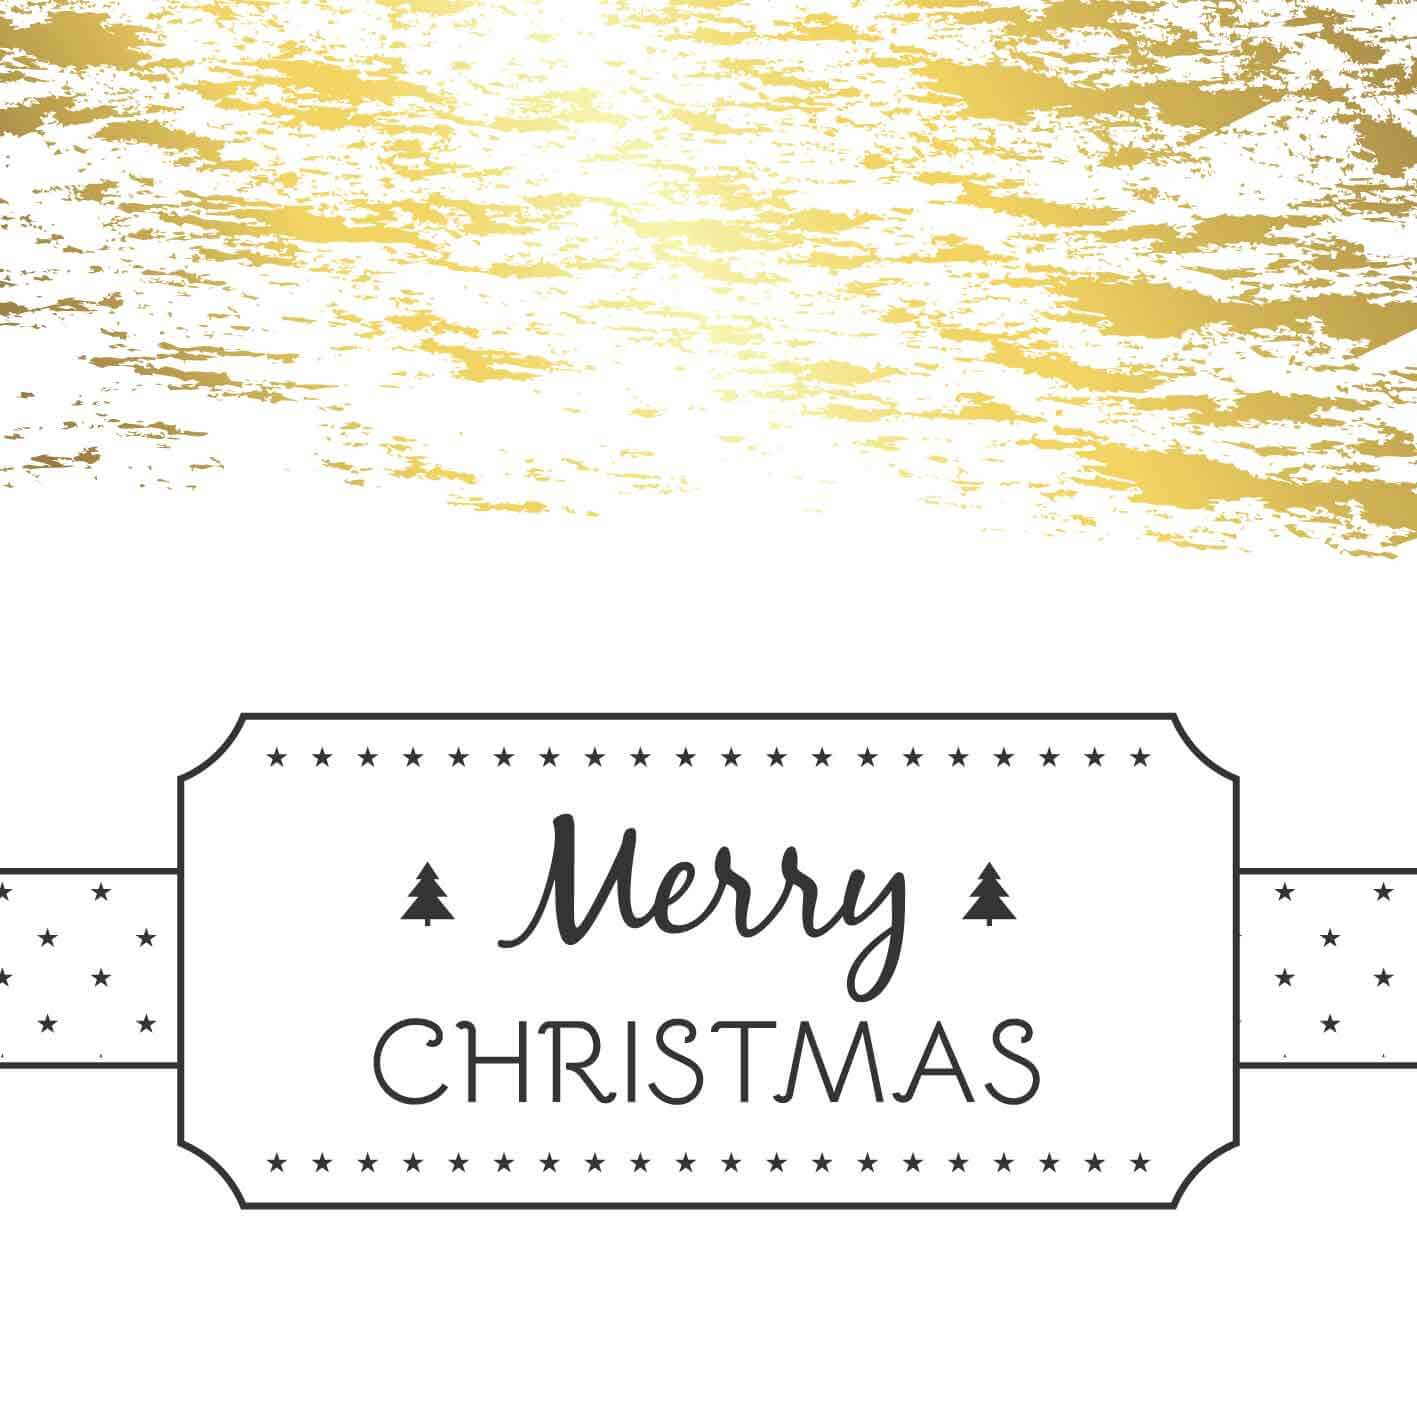 Printable Christmas Card Free Download